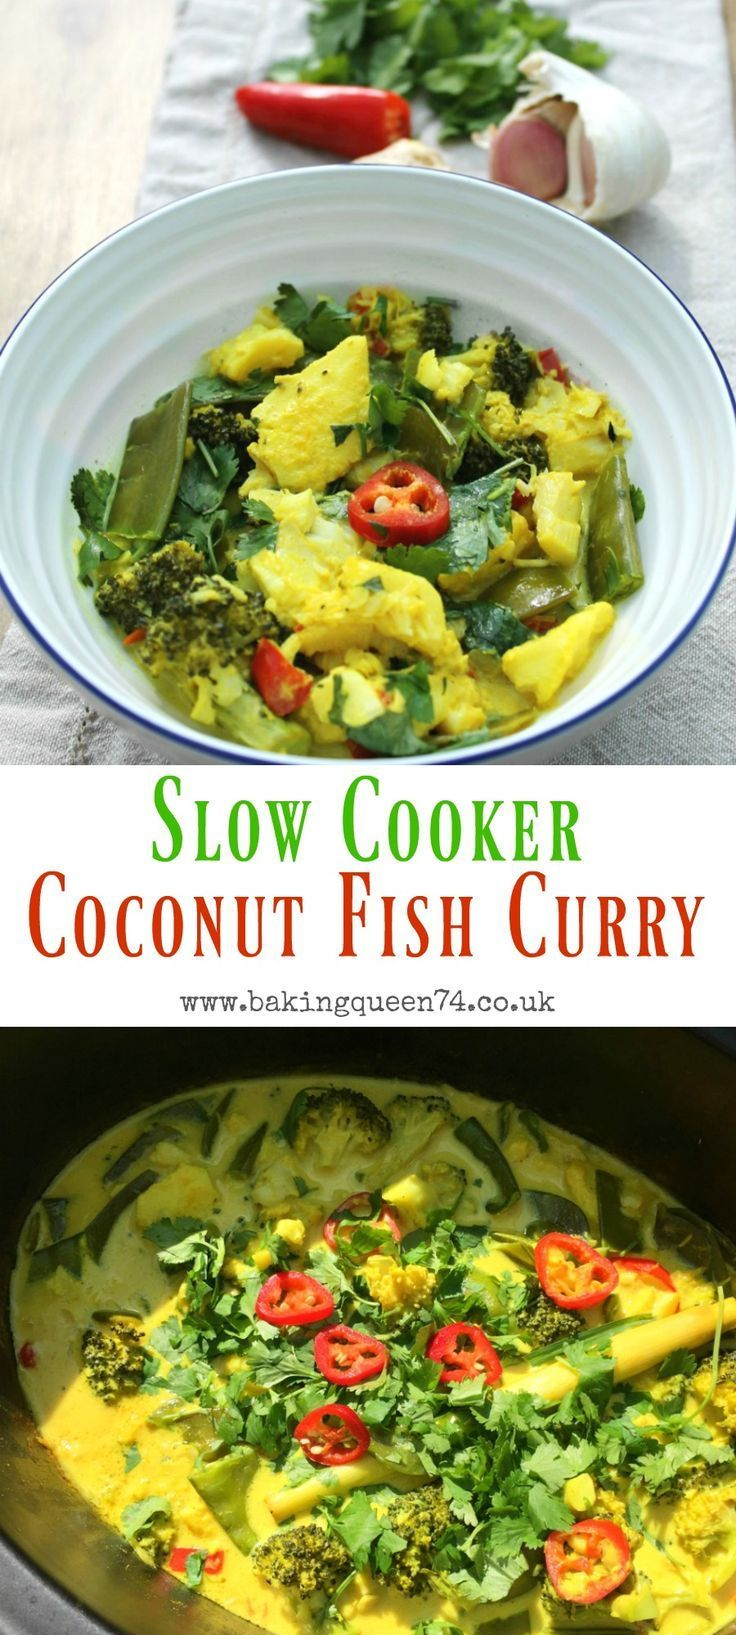 Slow cooker coconut fish curry an easy to make dish